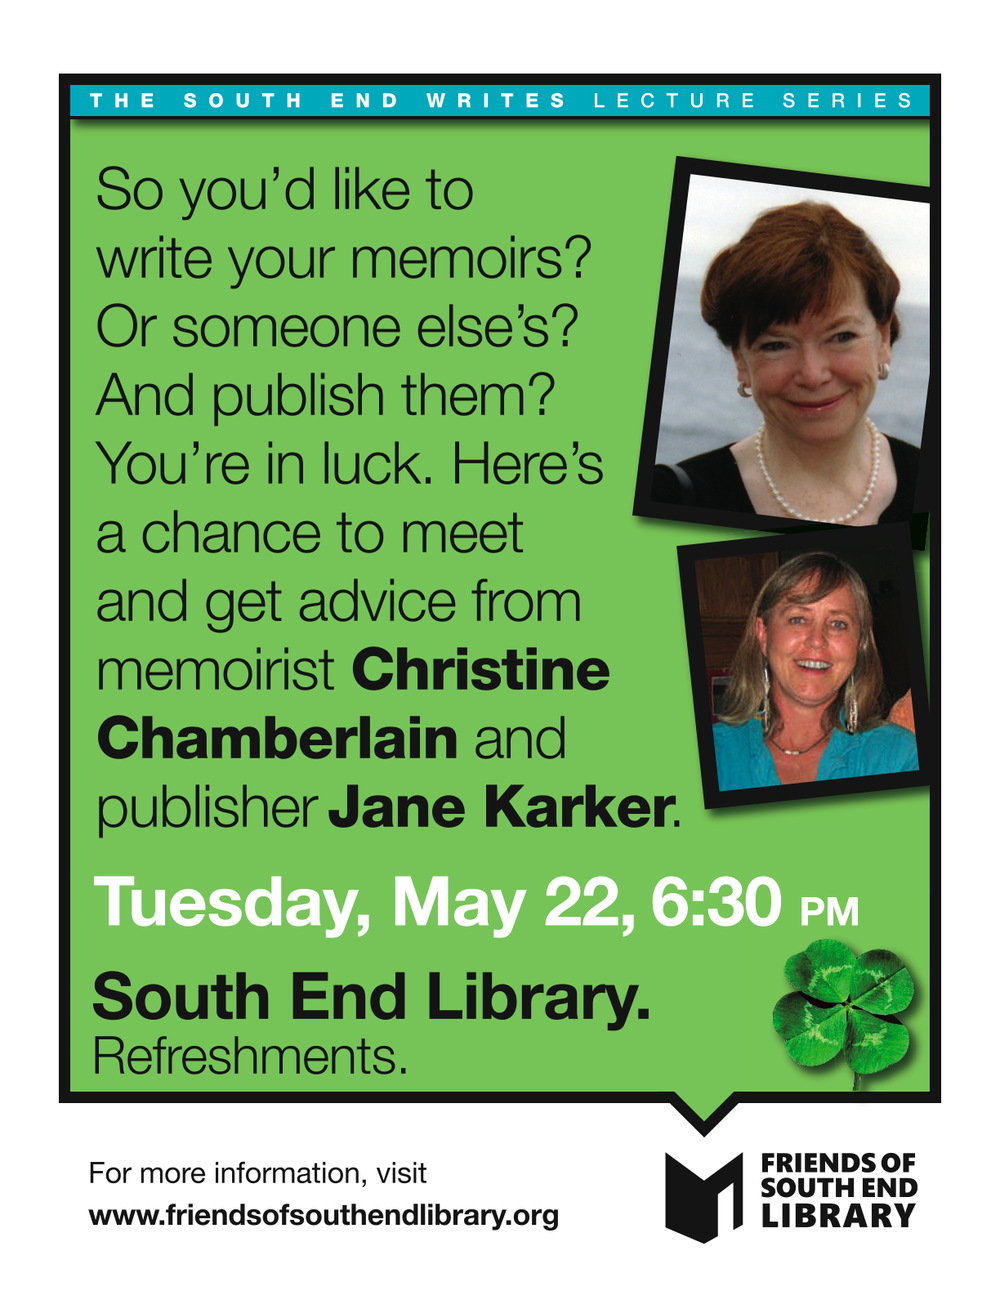 FOSEL _Greenn Christine Chamberlain flyer_5-22-12 1